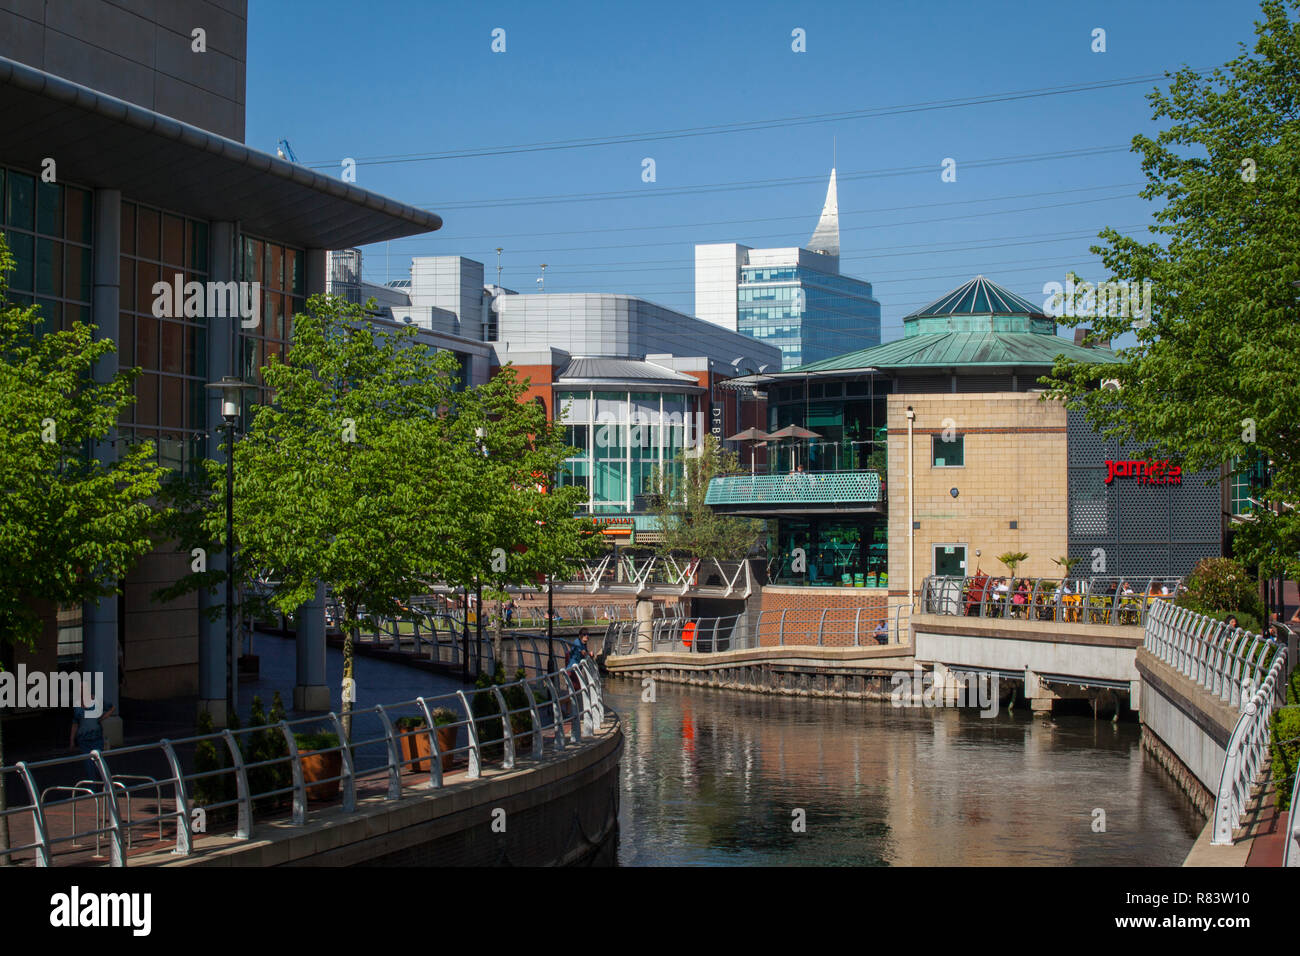 The River Kennet flows through the Oracle Shopping Centre in Reading, Berkshire Stock Photo